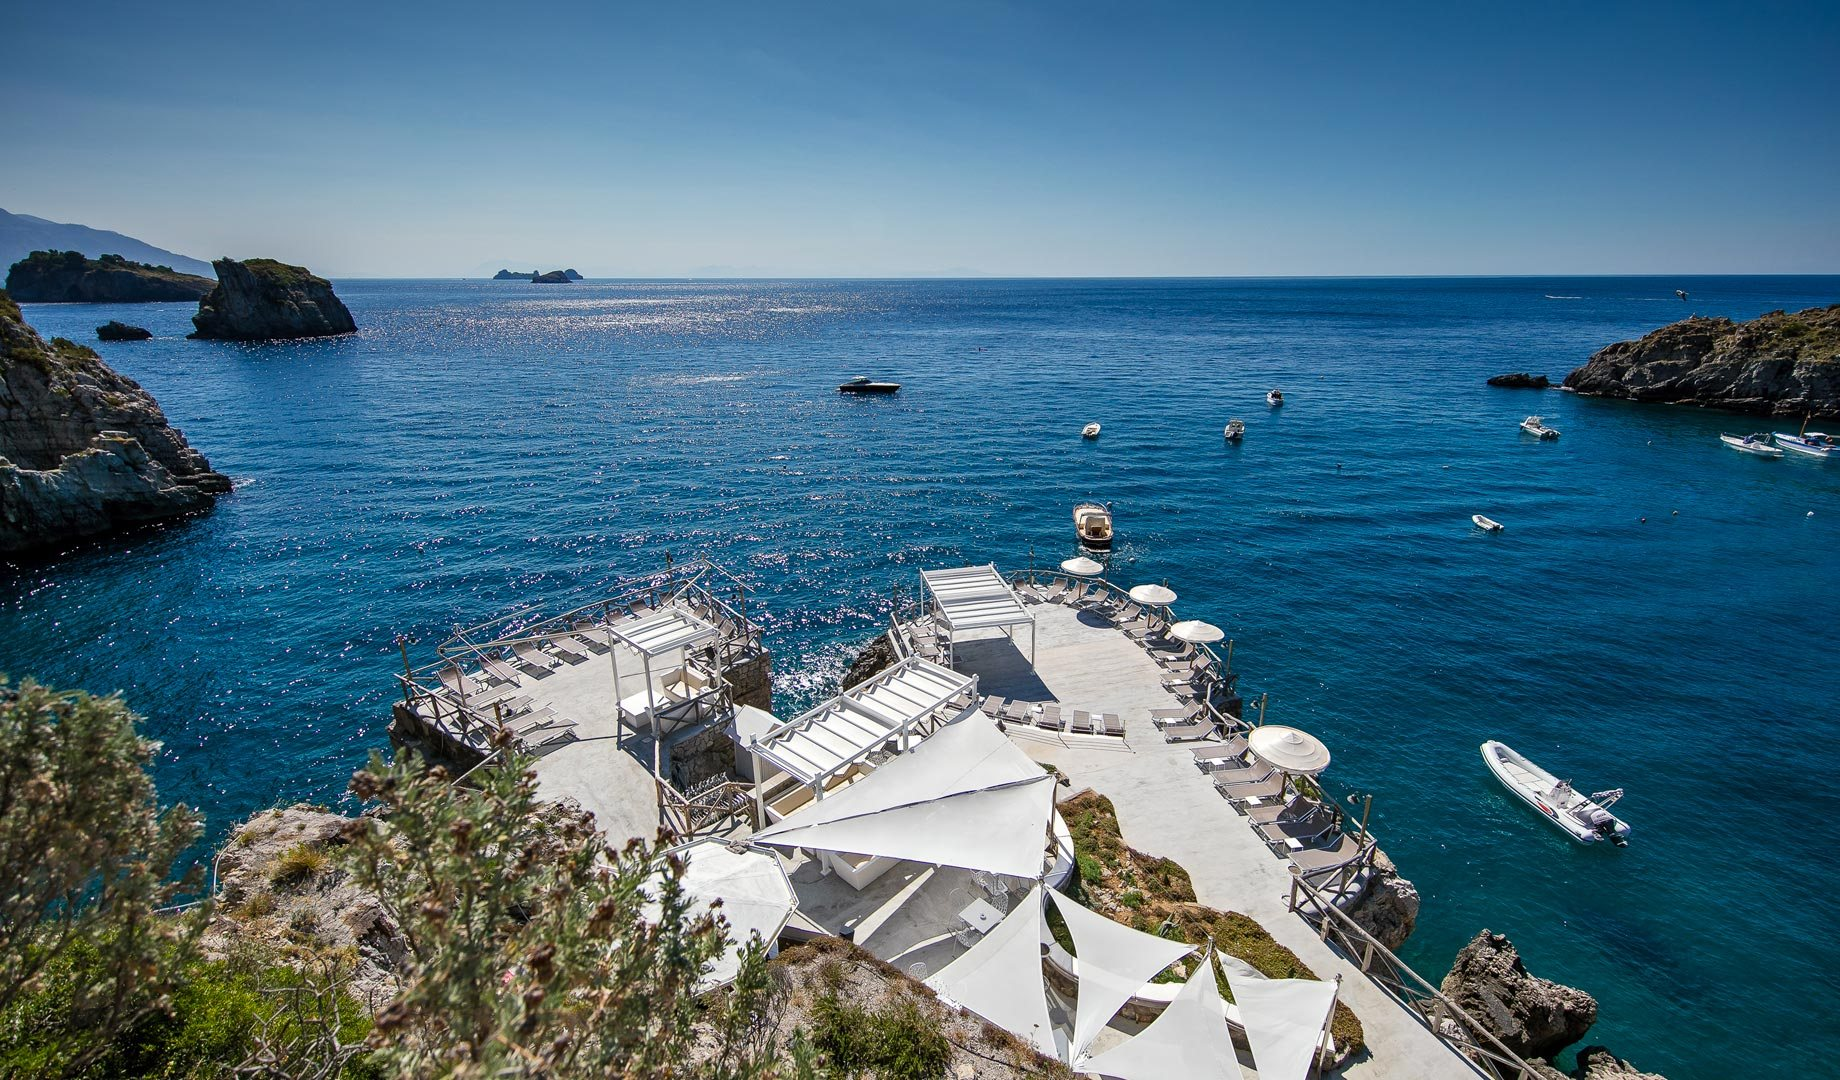 Yacht charter insider's tips: the best beach clubs in Sorrento and the Amalfi Coast